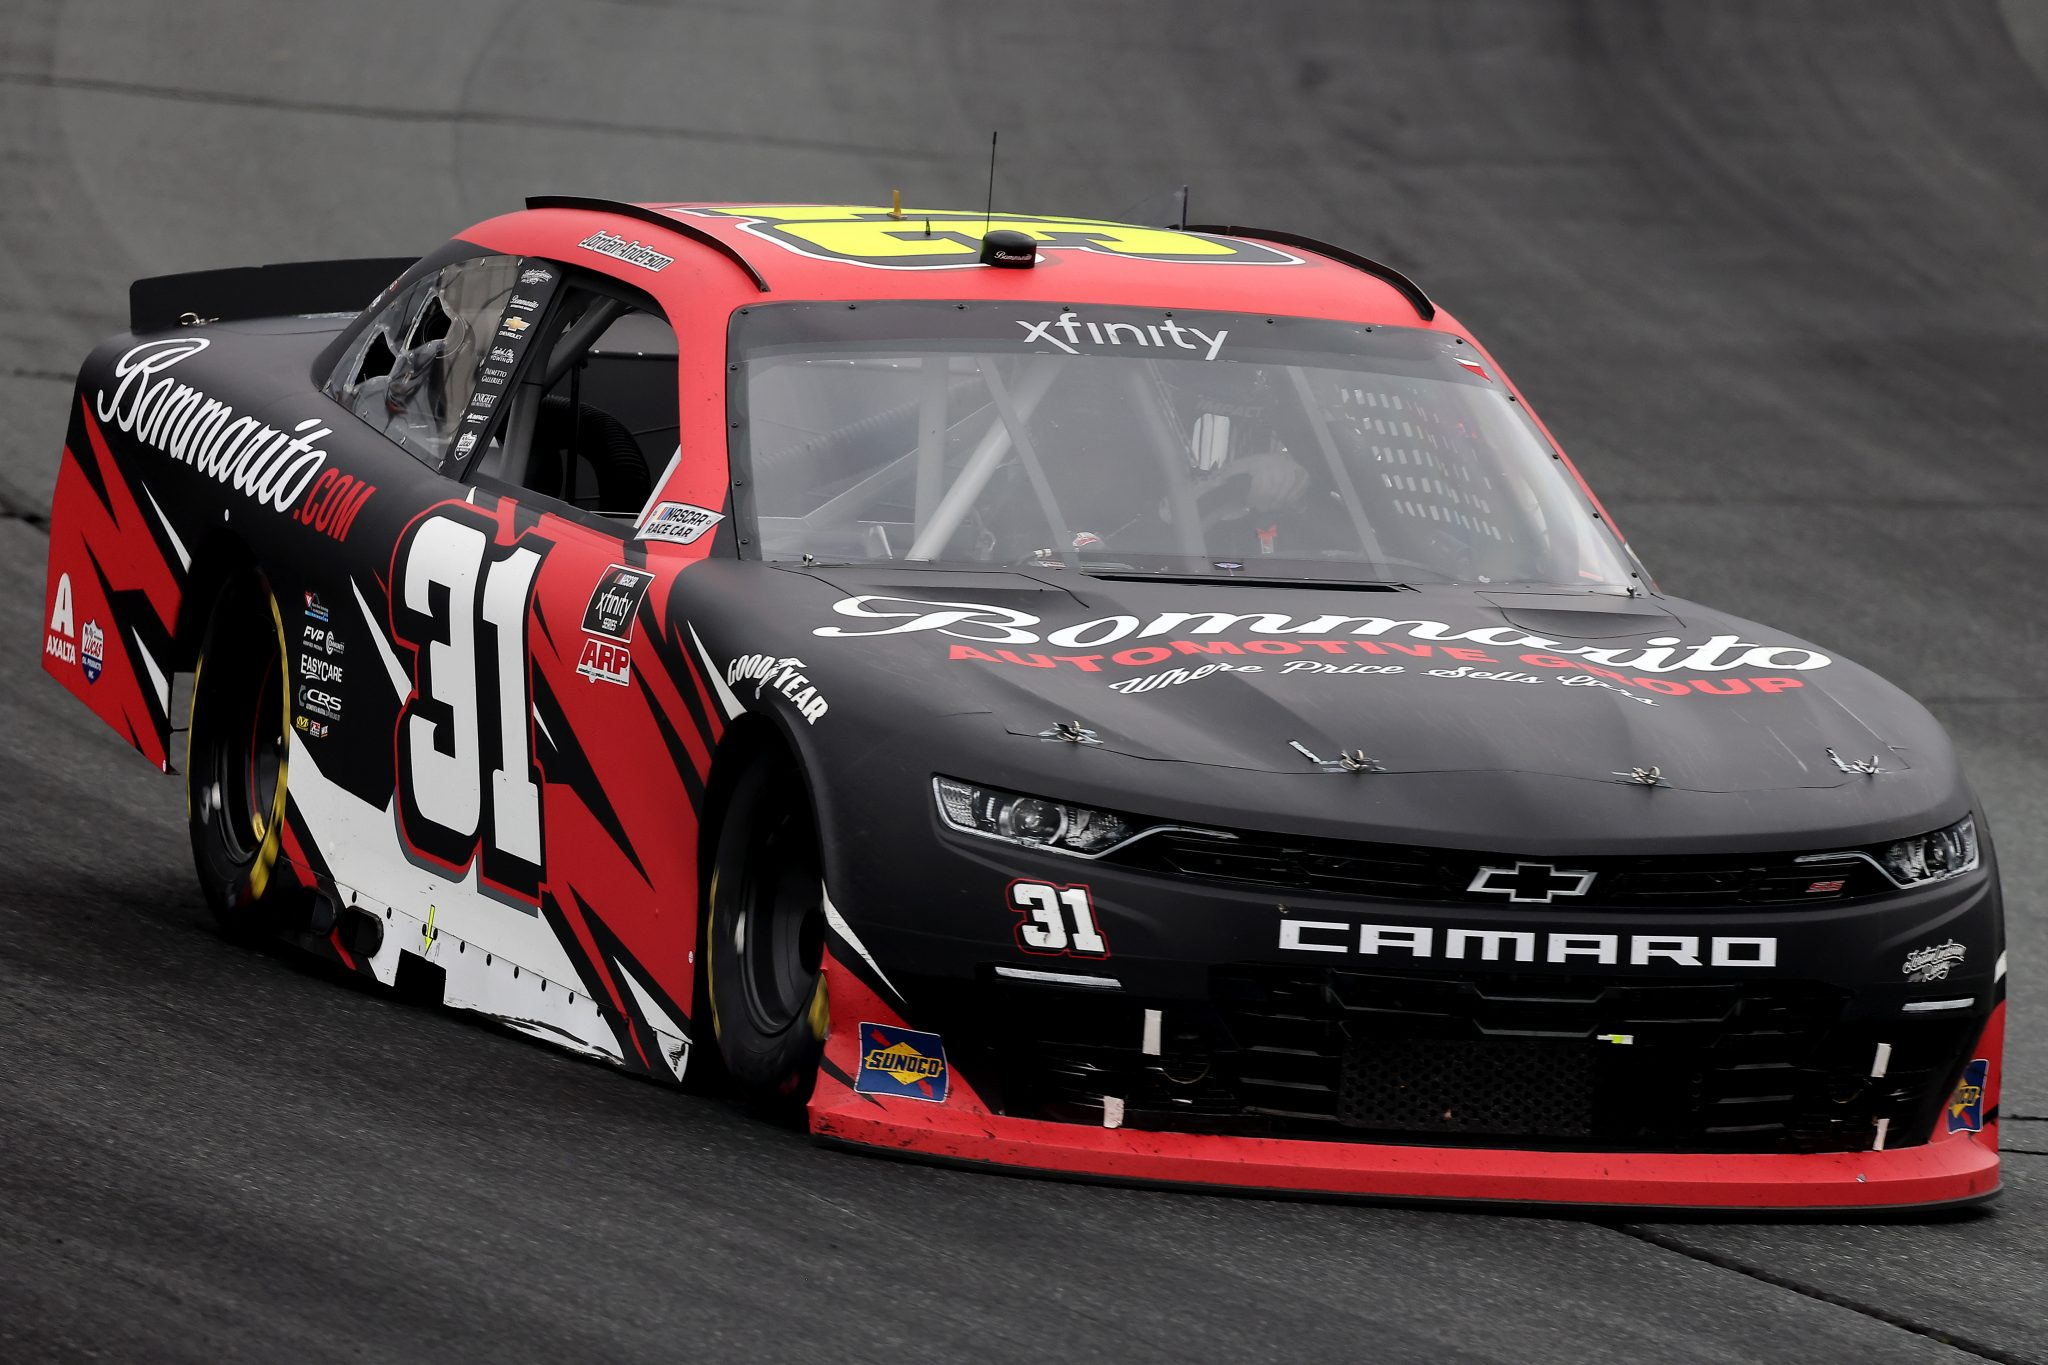 LOUDON, NEW HAMPSHIRE - JULY 17: Jordan Anderson, driver of the #31 Bommarito.com Chevrolet, drives during the NASCAR Xfinity Series Ambetter Get Vaccinated 200 at New Hampshire Motor Speedway on July 17, 2021 in Loudon, New Hampshire. (Photo by James Gilbert/Getty Images) | Getty Images